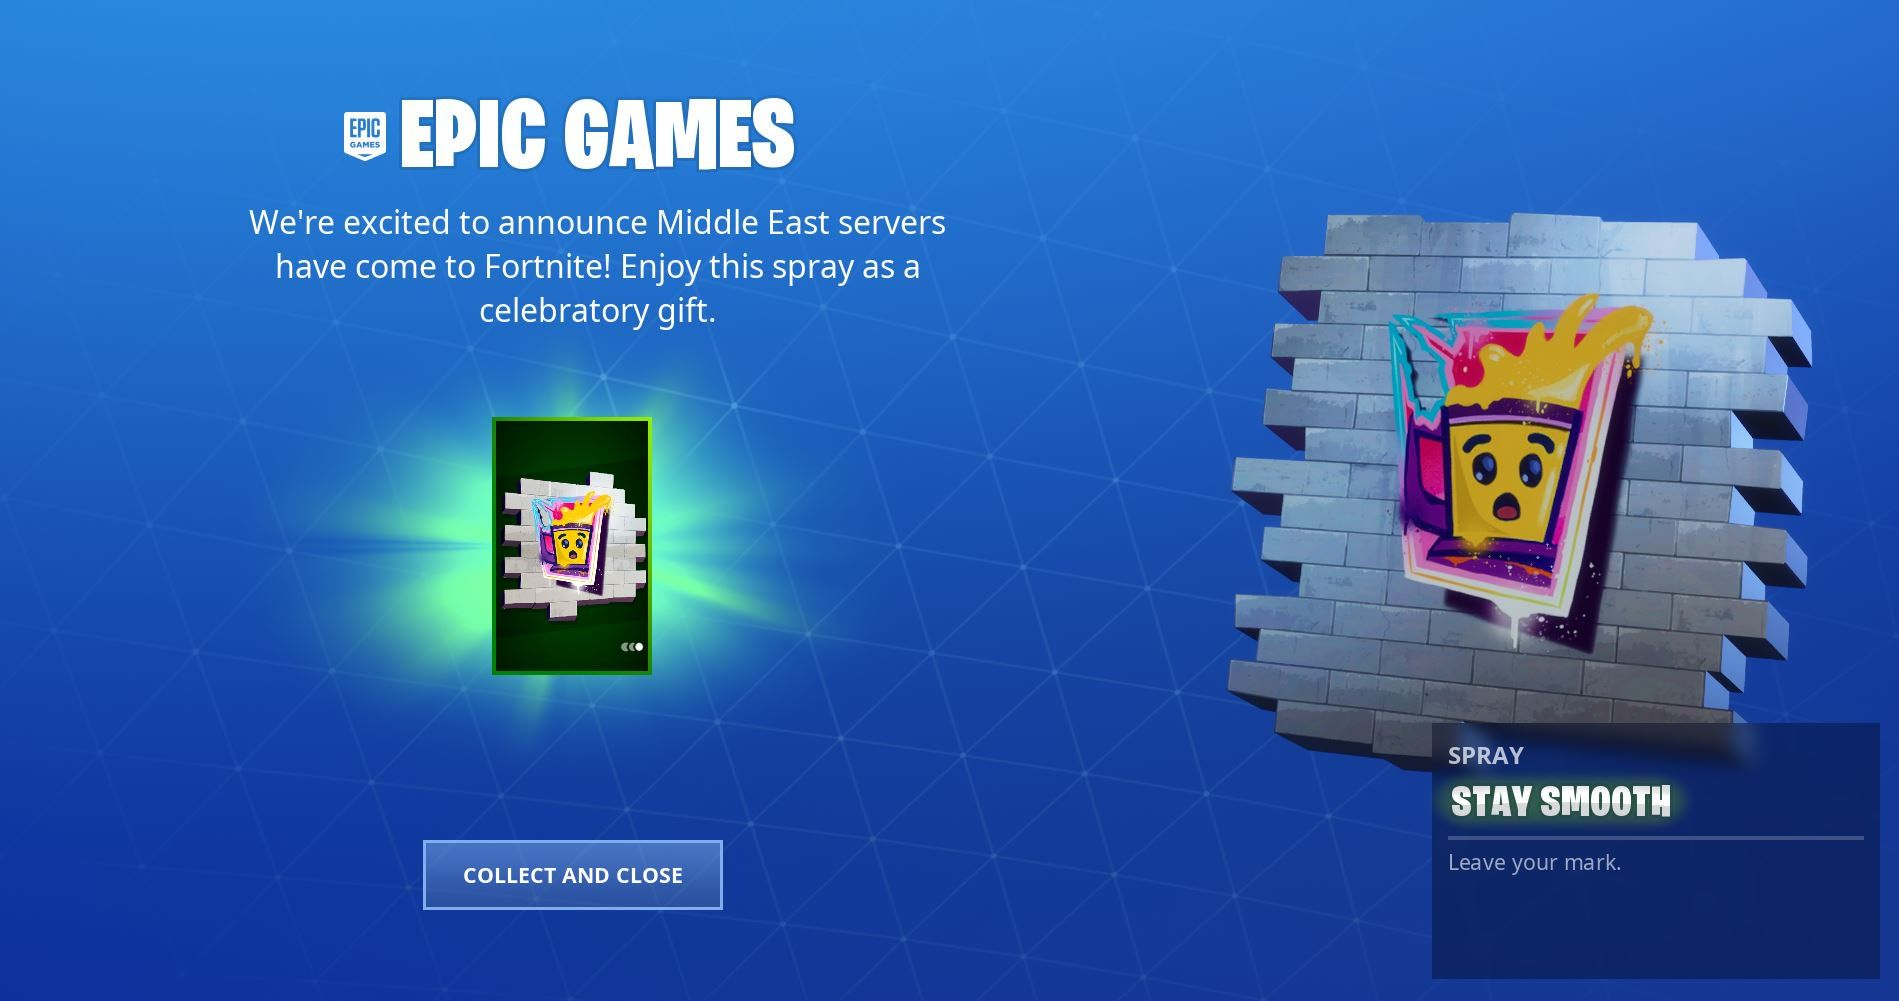 Epic Games Providing Free Fortnite Stay Smooth Spray To All Players Heres How To Get Yours Epic Games Are Providing All Fortnite Pla Fortnite Epic Games Epic